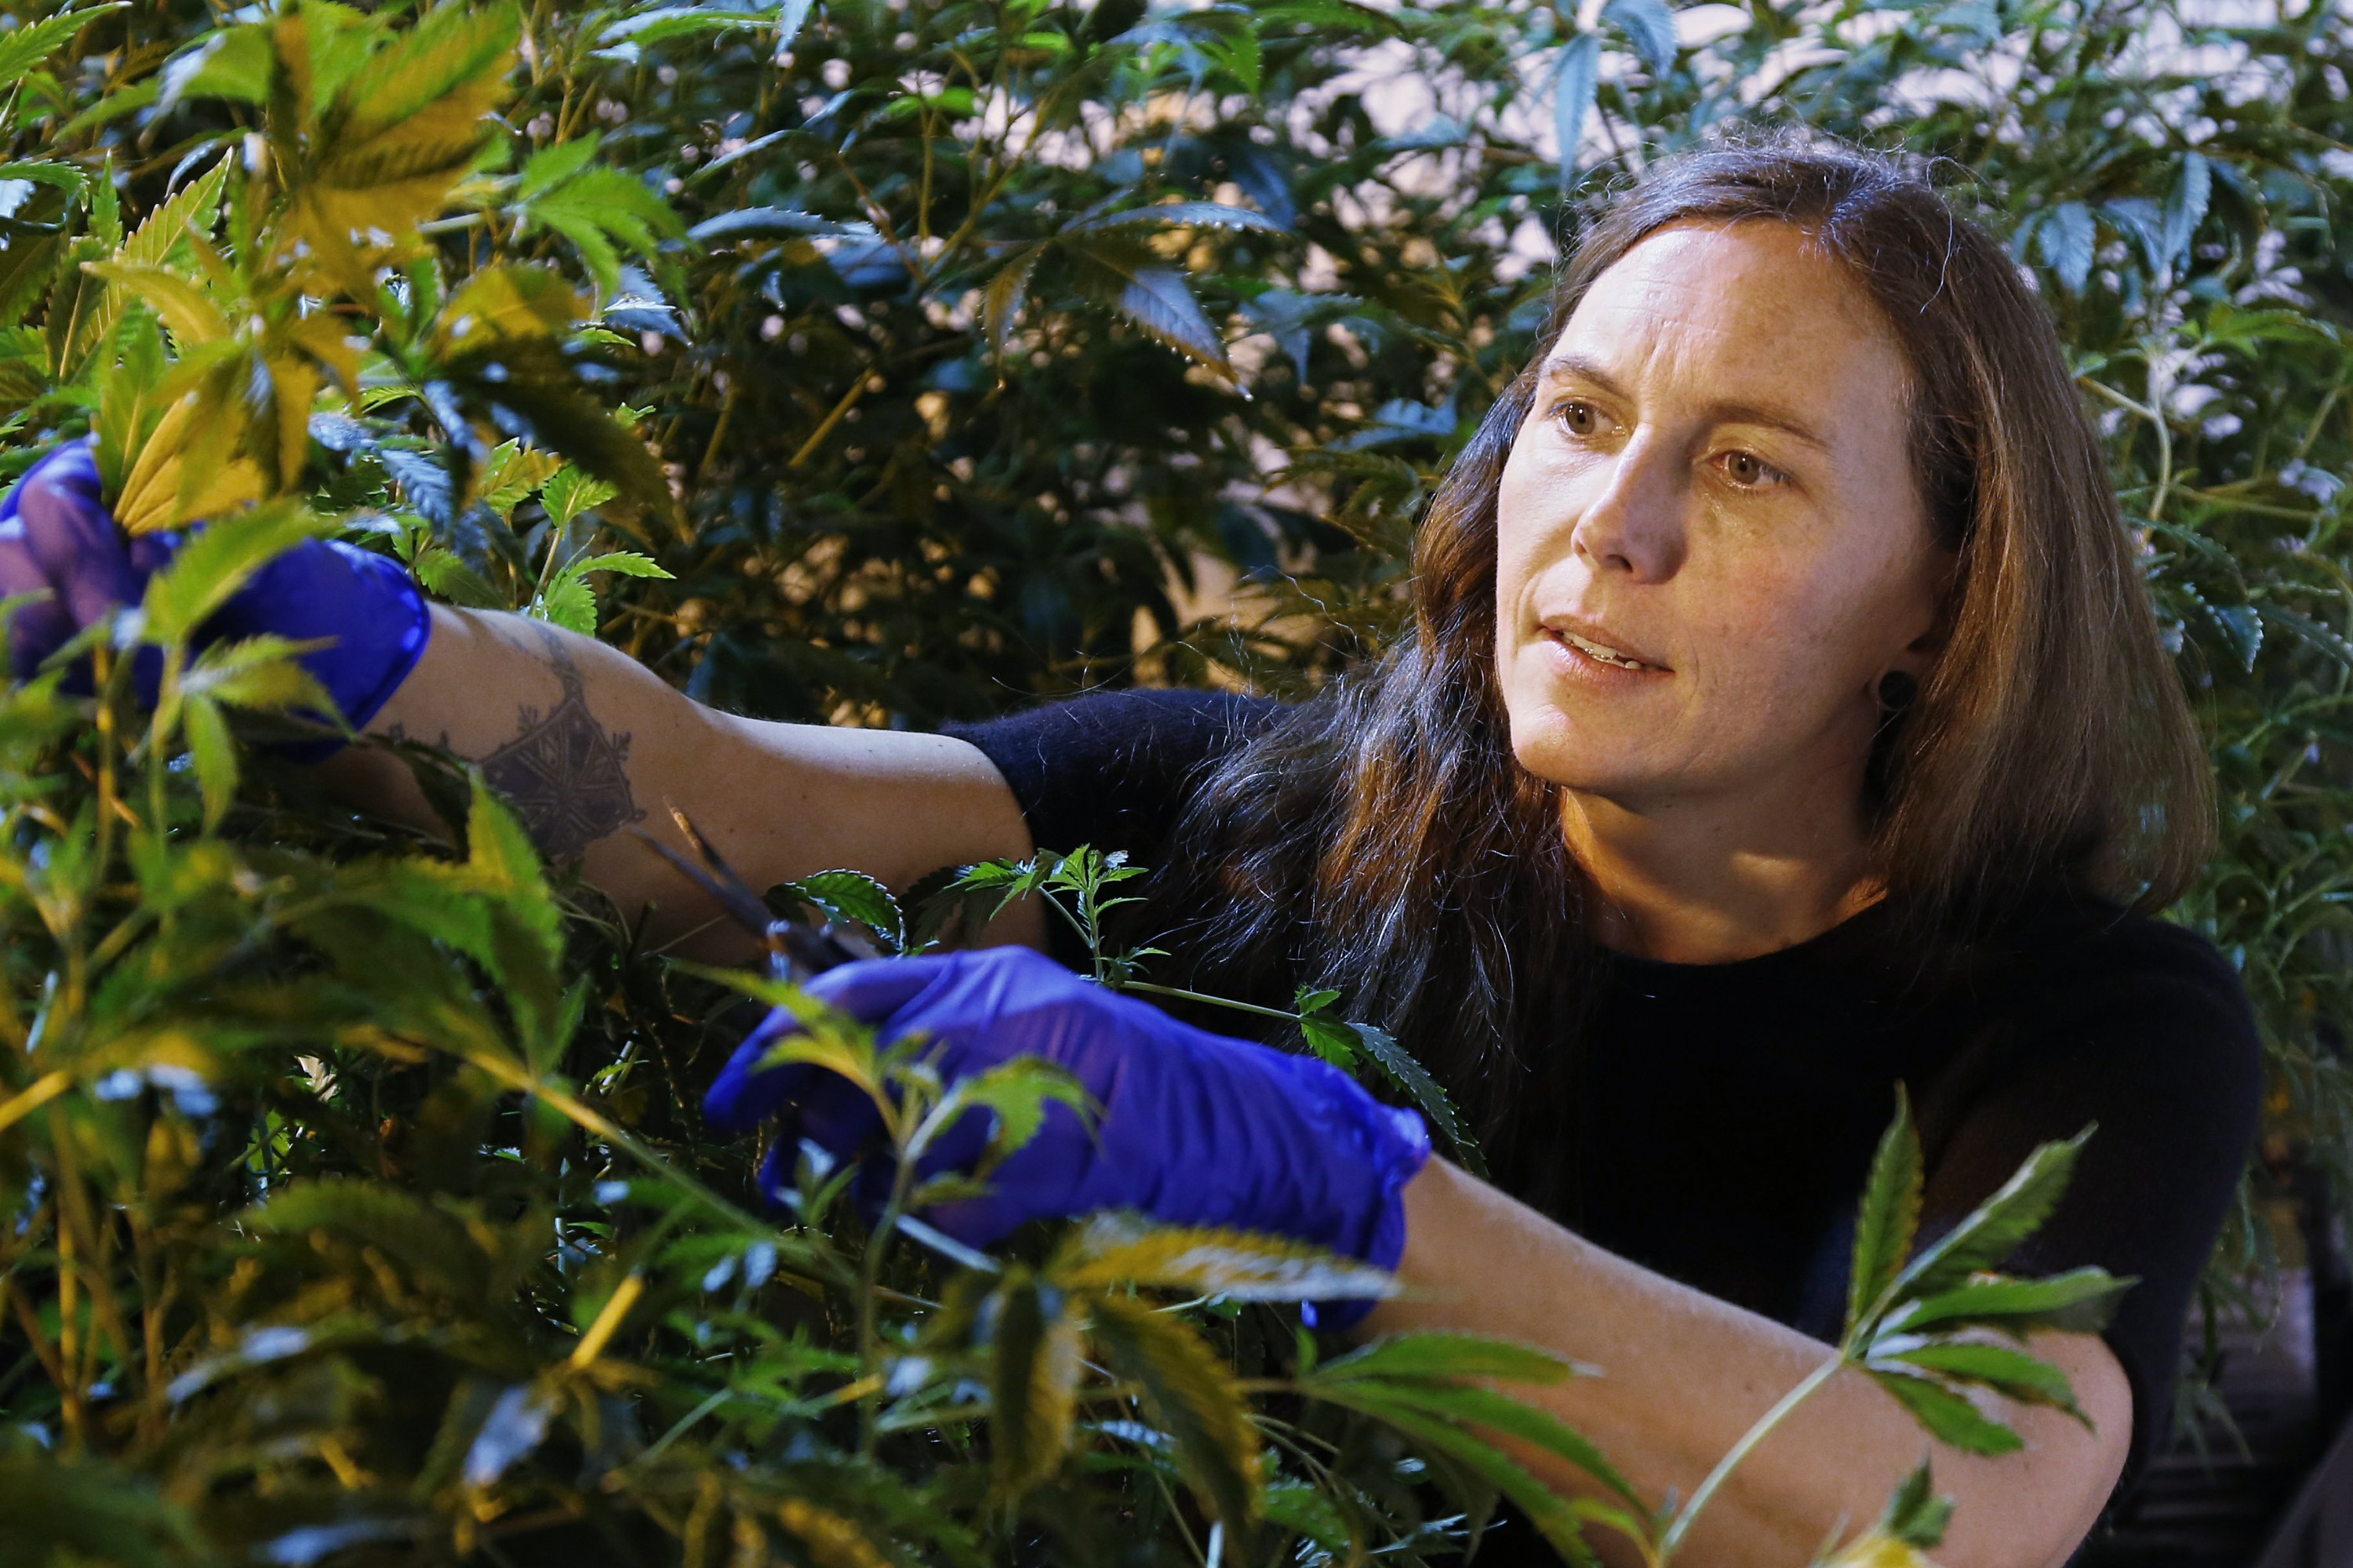 Pot entrepreneurs flocking to the Bible Belt for low taxes